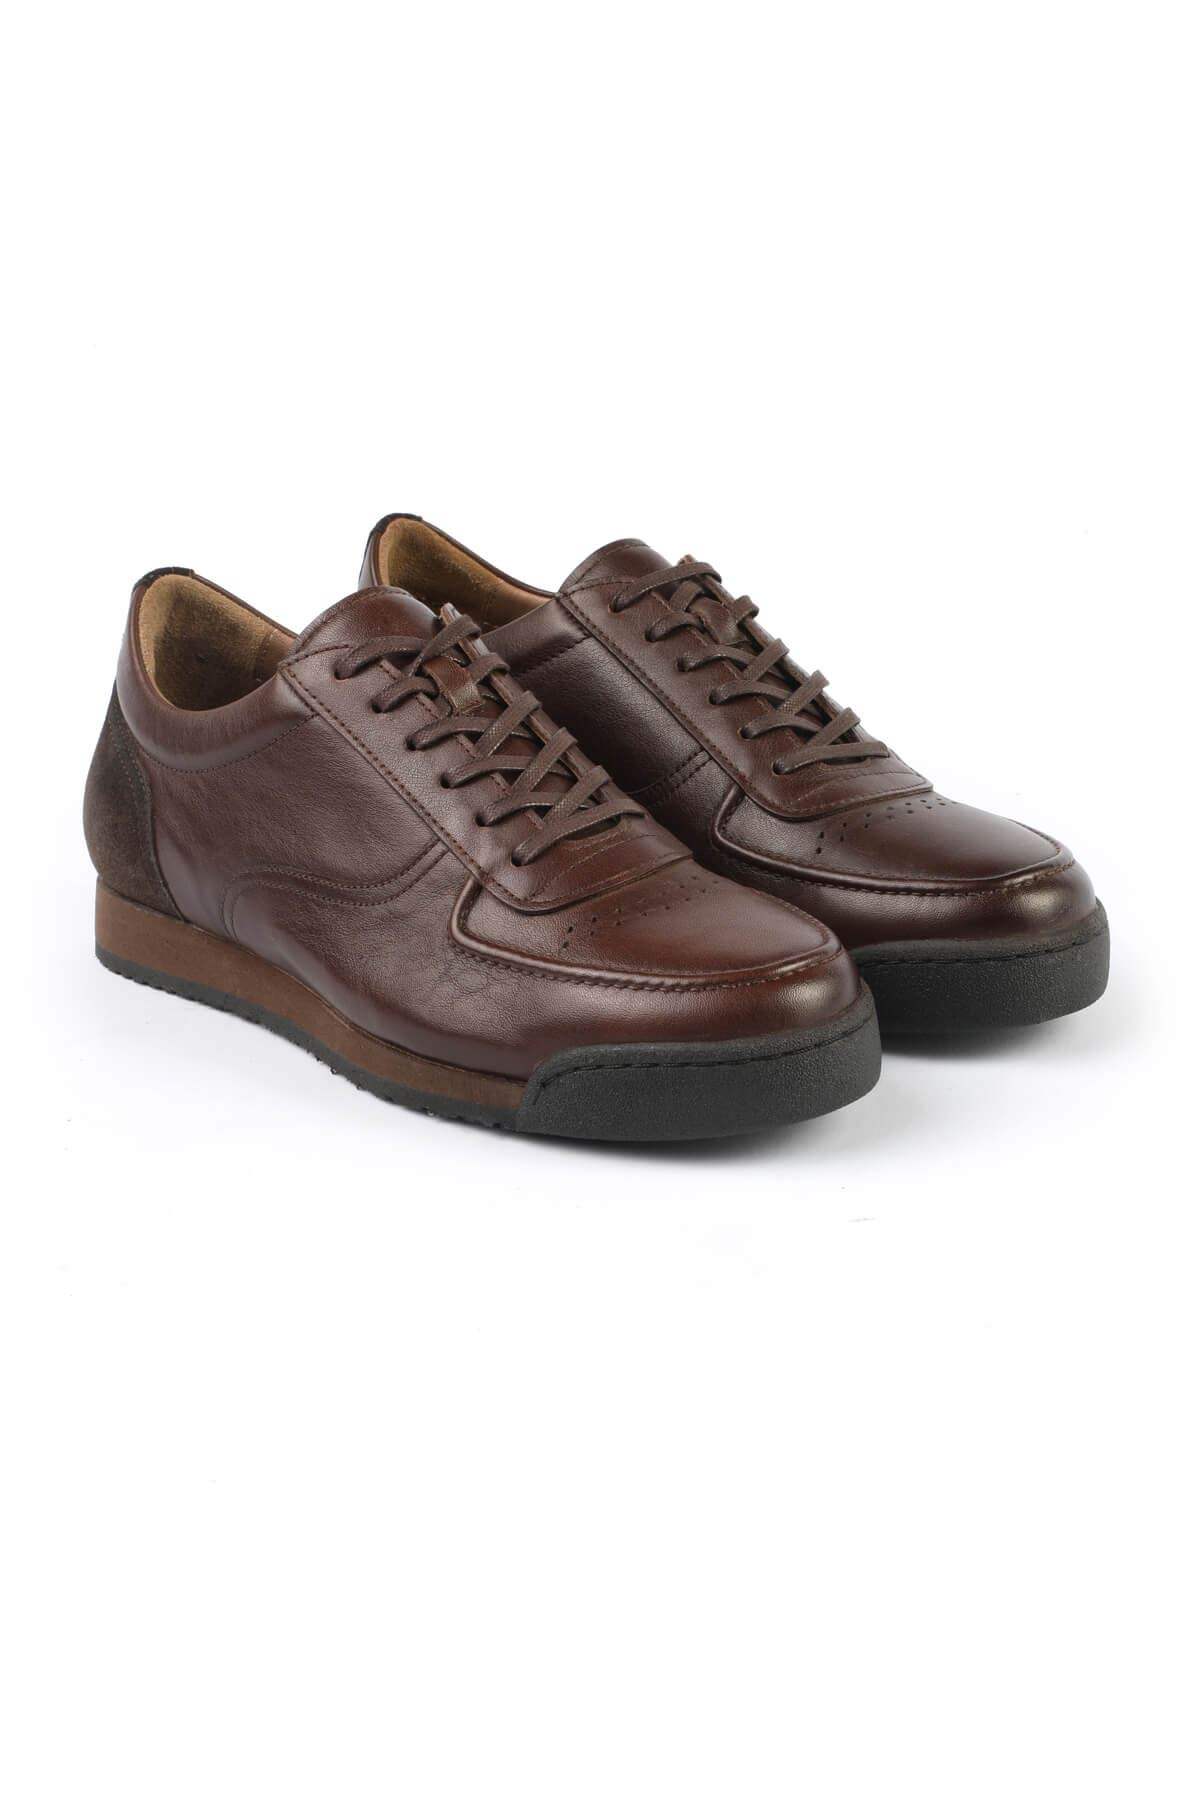 Libero 3001 Brown Sport Shoes